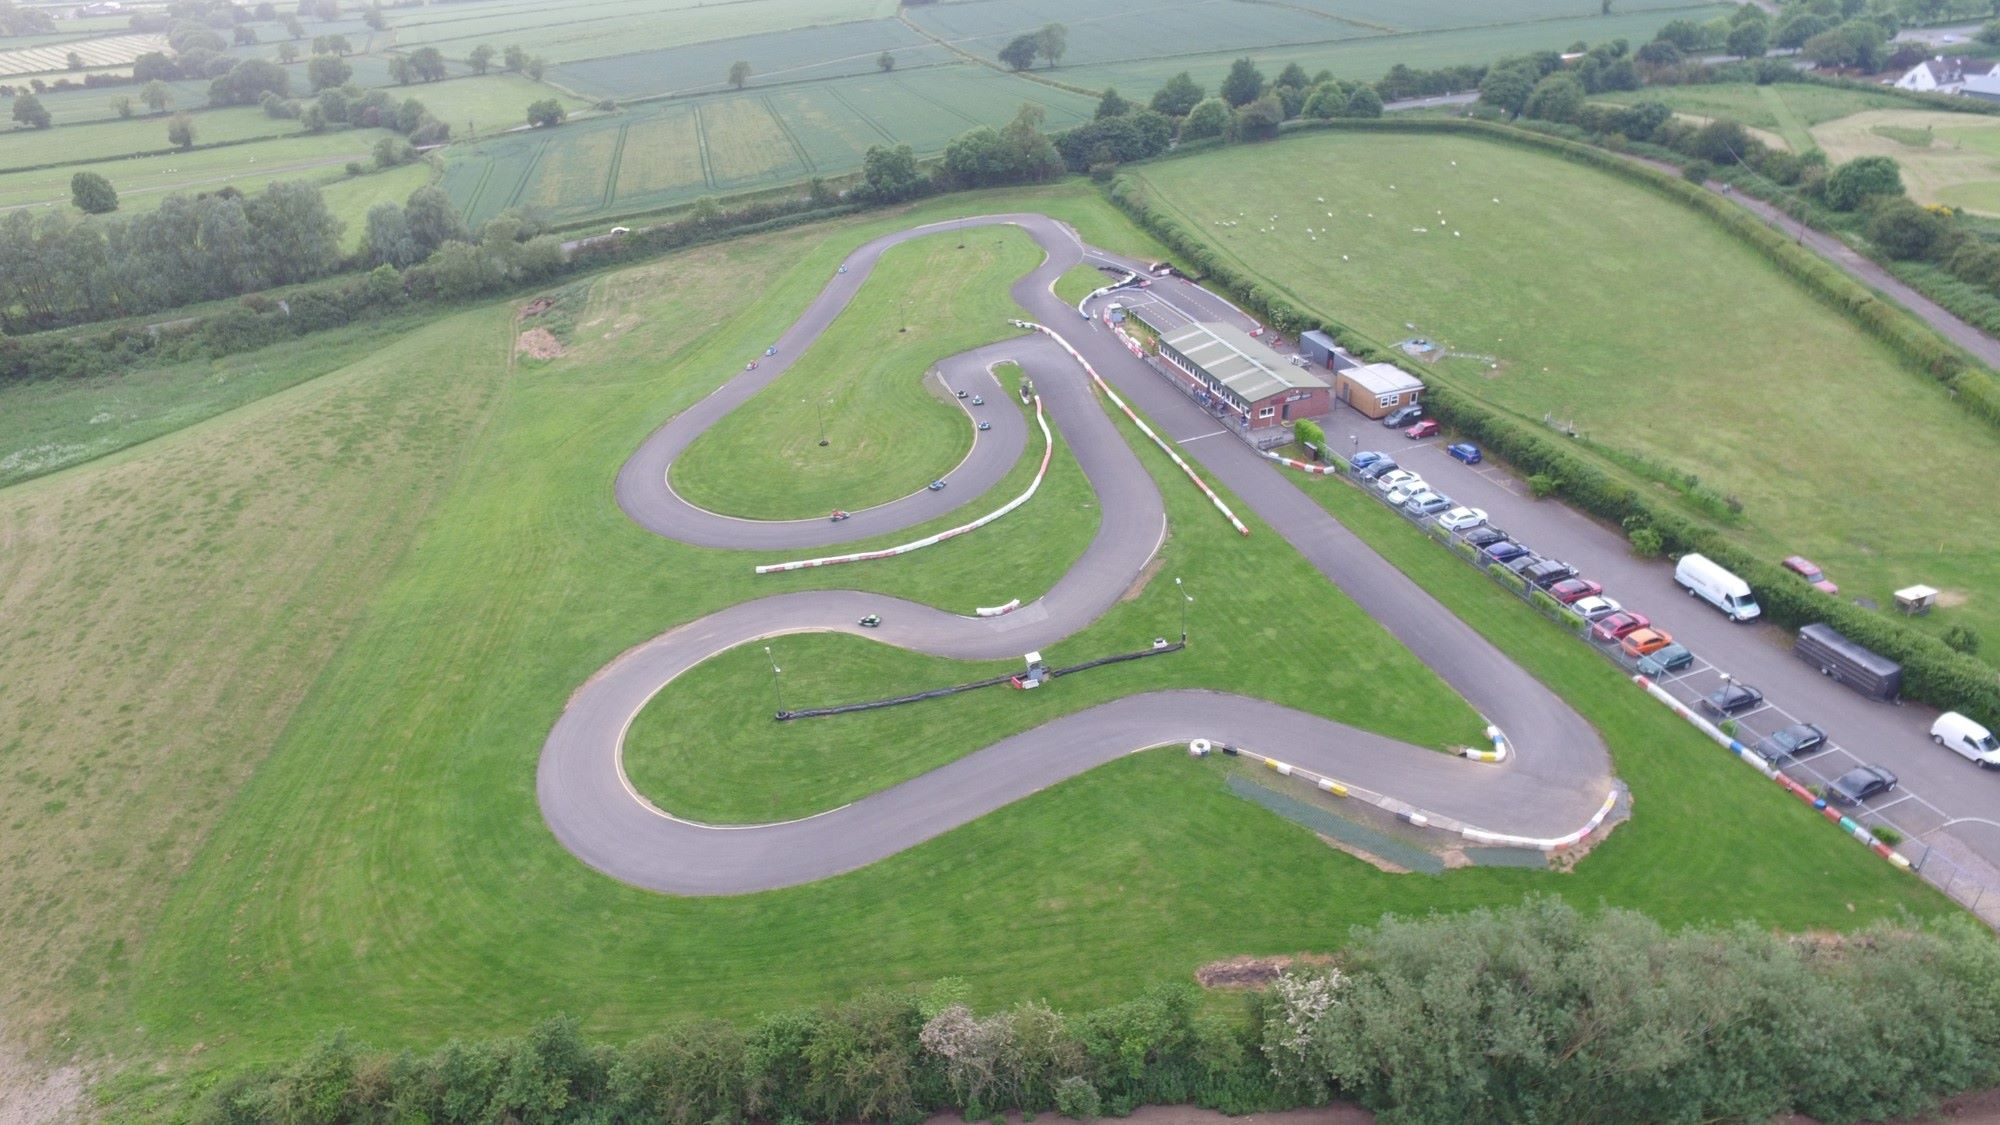 Suttton Circuit from the air